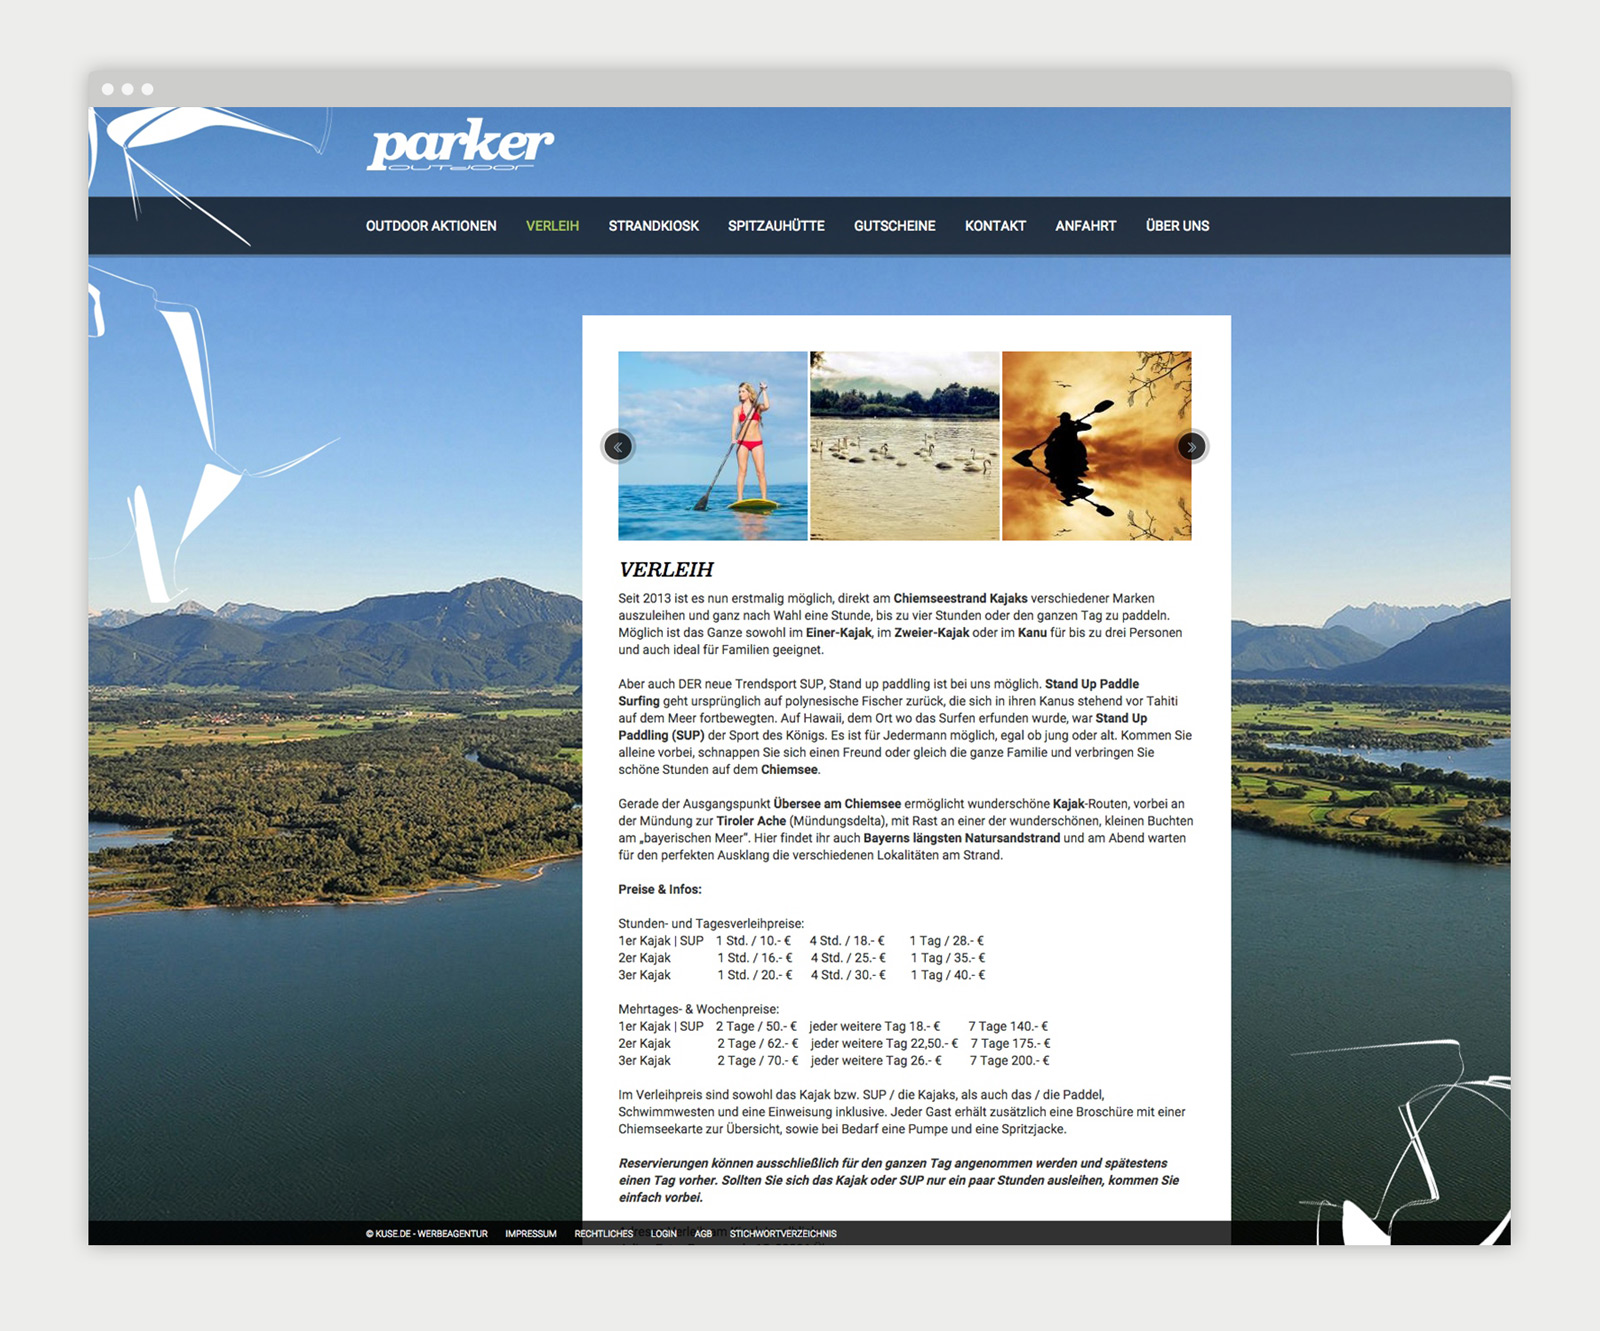 Parker Outdoor Website - Mockup Verleih